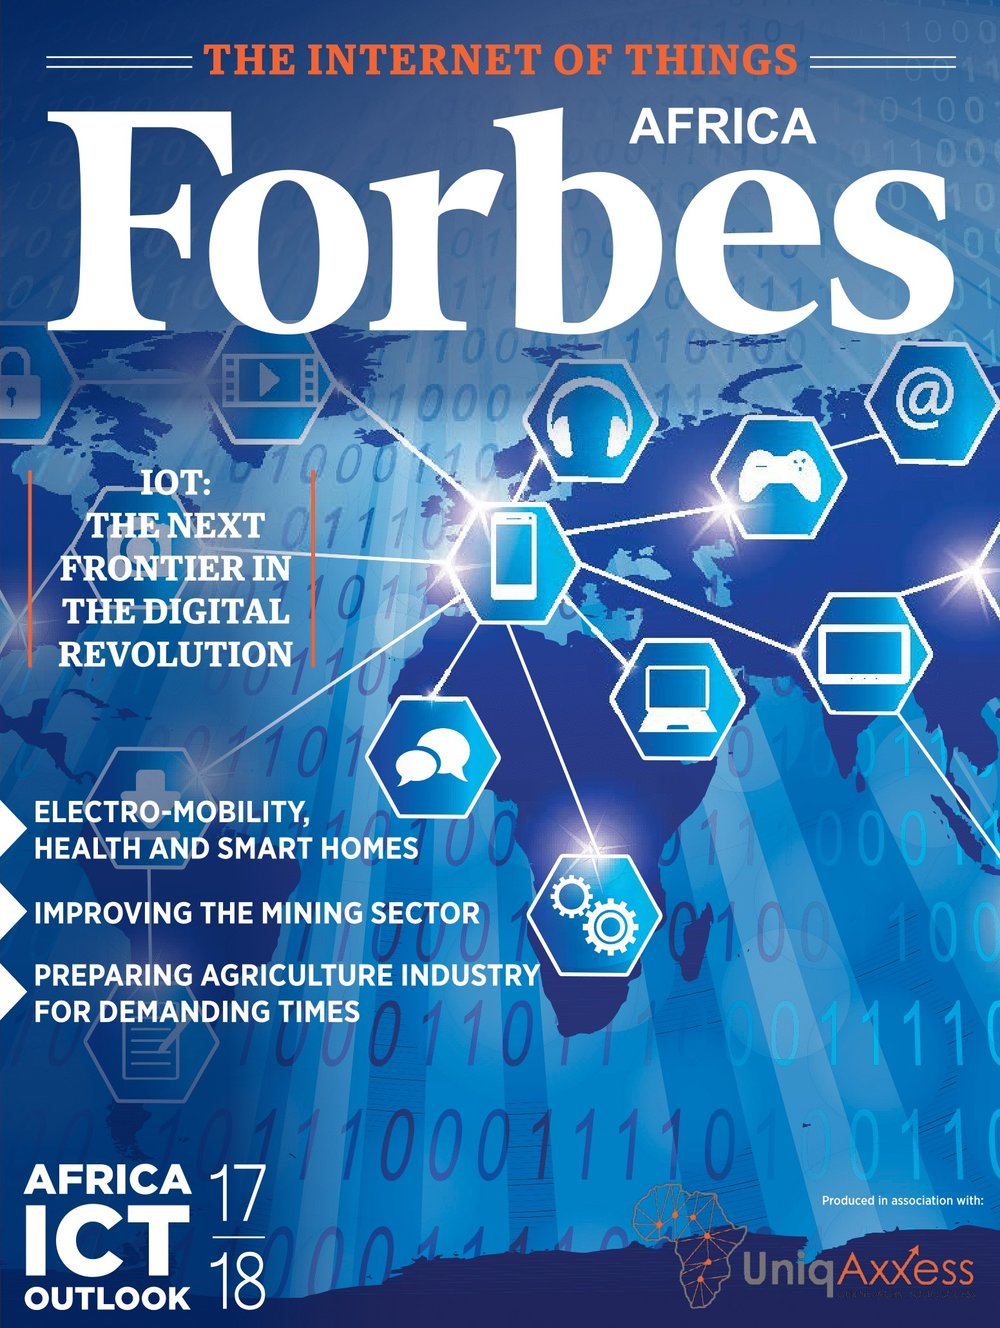 Forbes Africa ICT Outlook 17-18.jpg